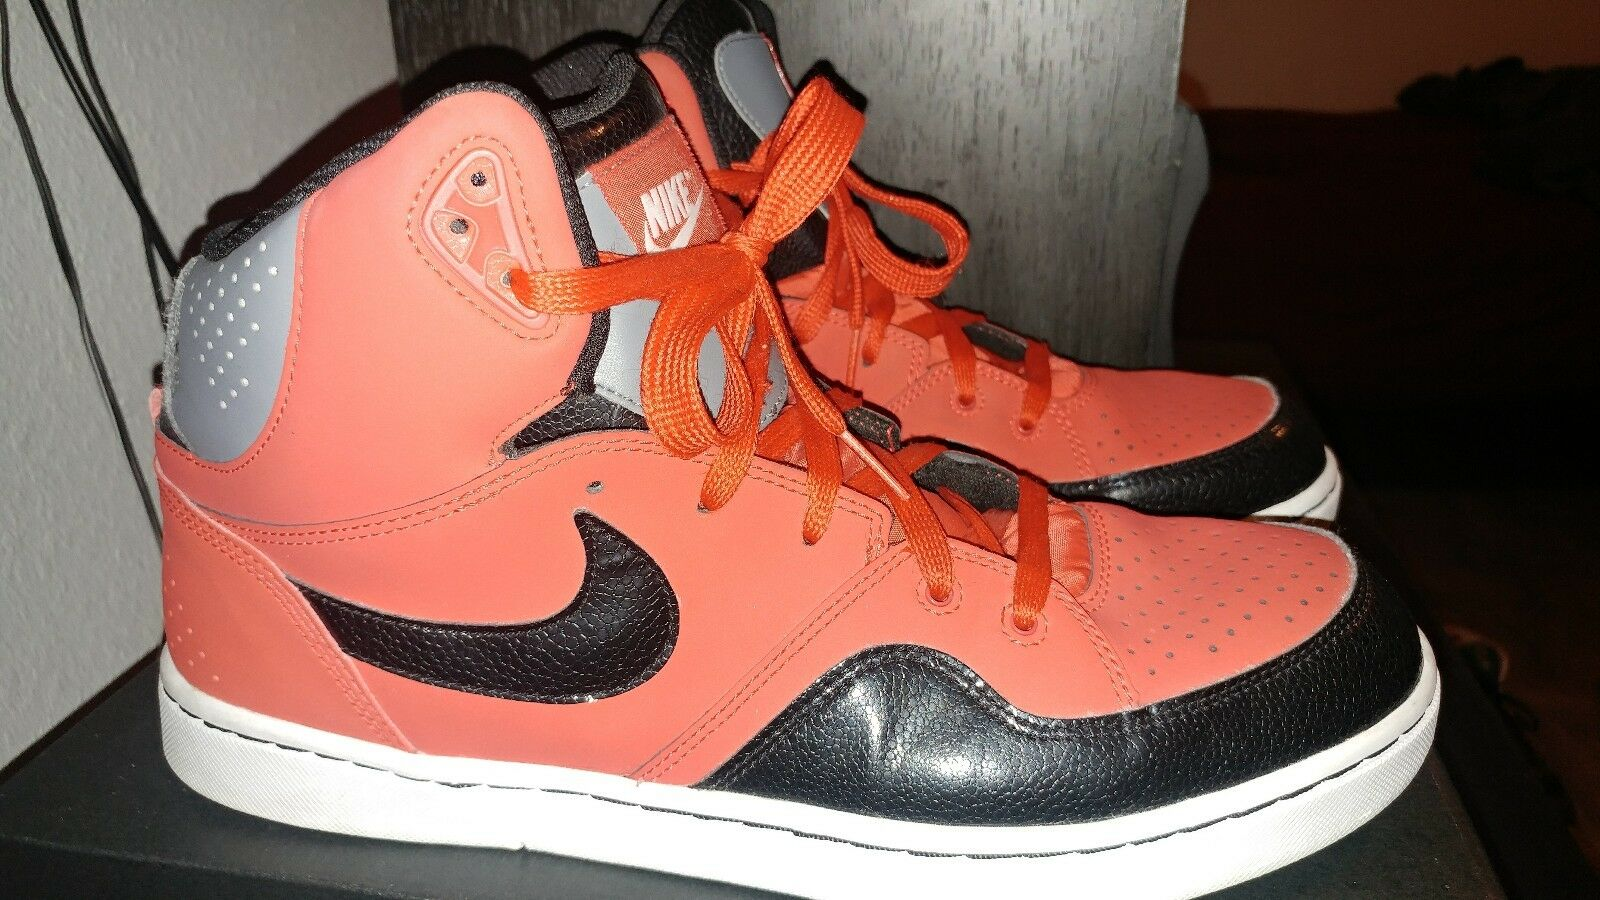 Nike Court Tranxition Red Size High Top Shoes Men's Size Red 11.5 f3ae69